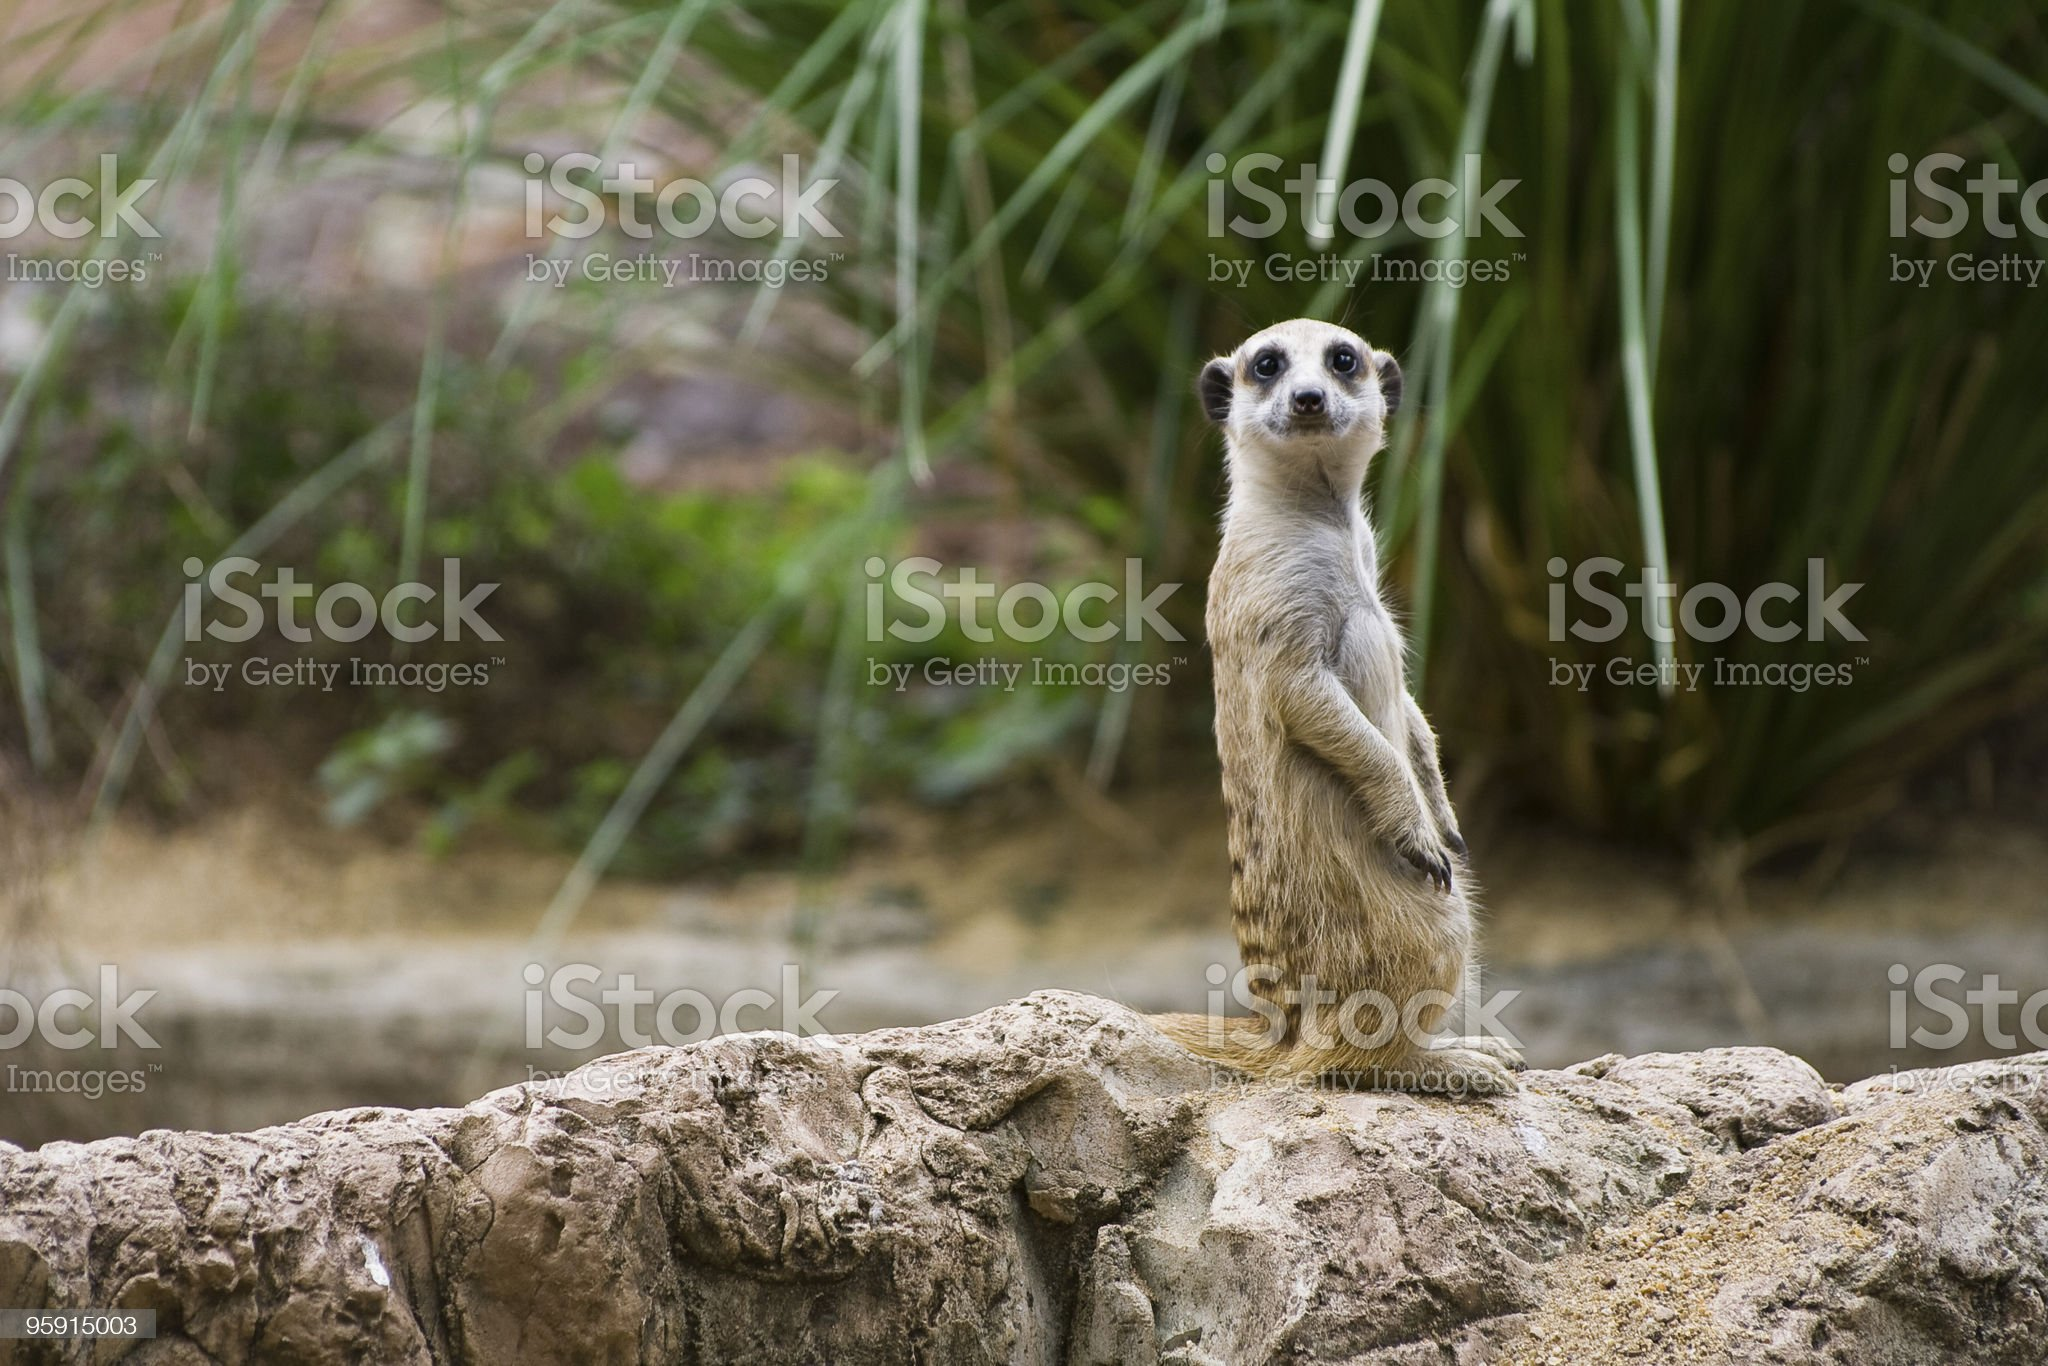 Meerkat standing on a rock, smiling royalty-free stock photo